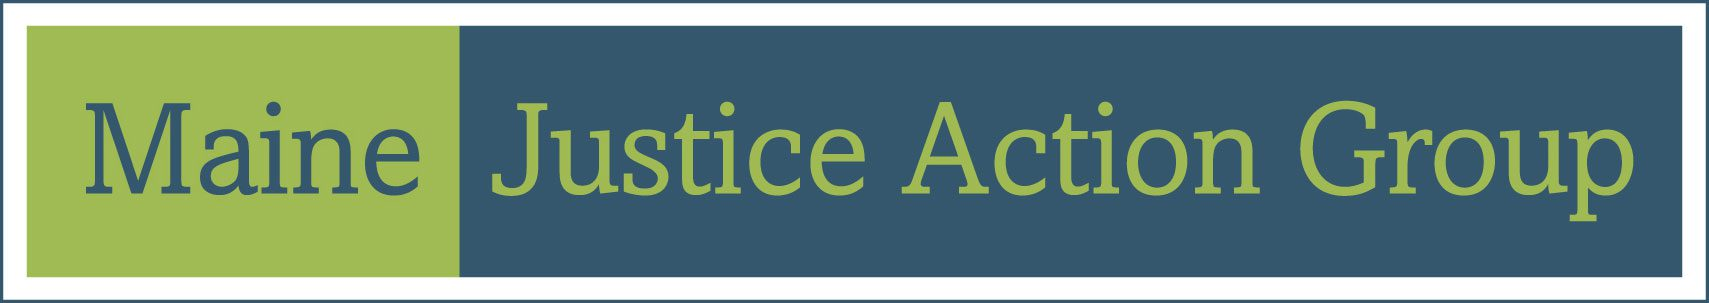 Maine Justice Action Group Logo